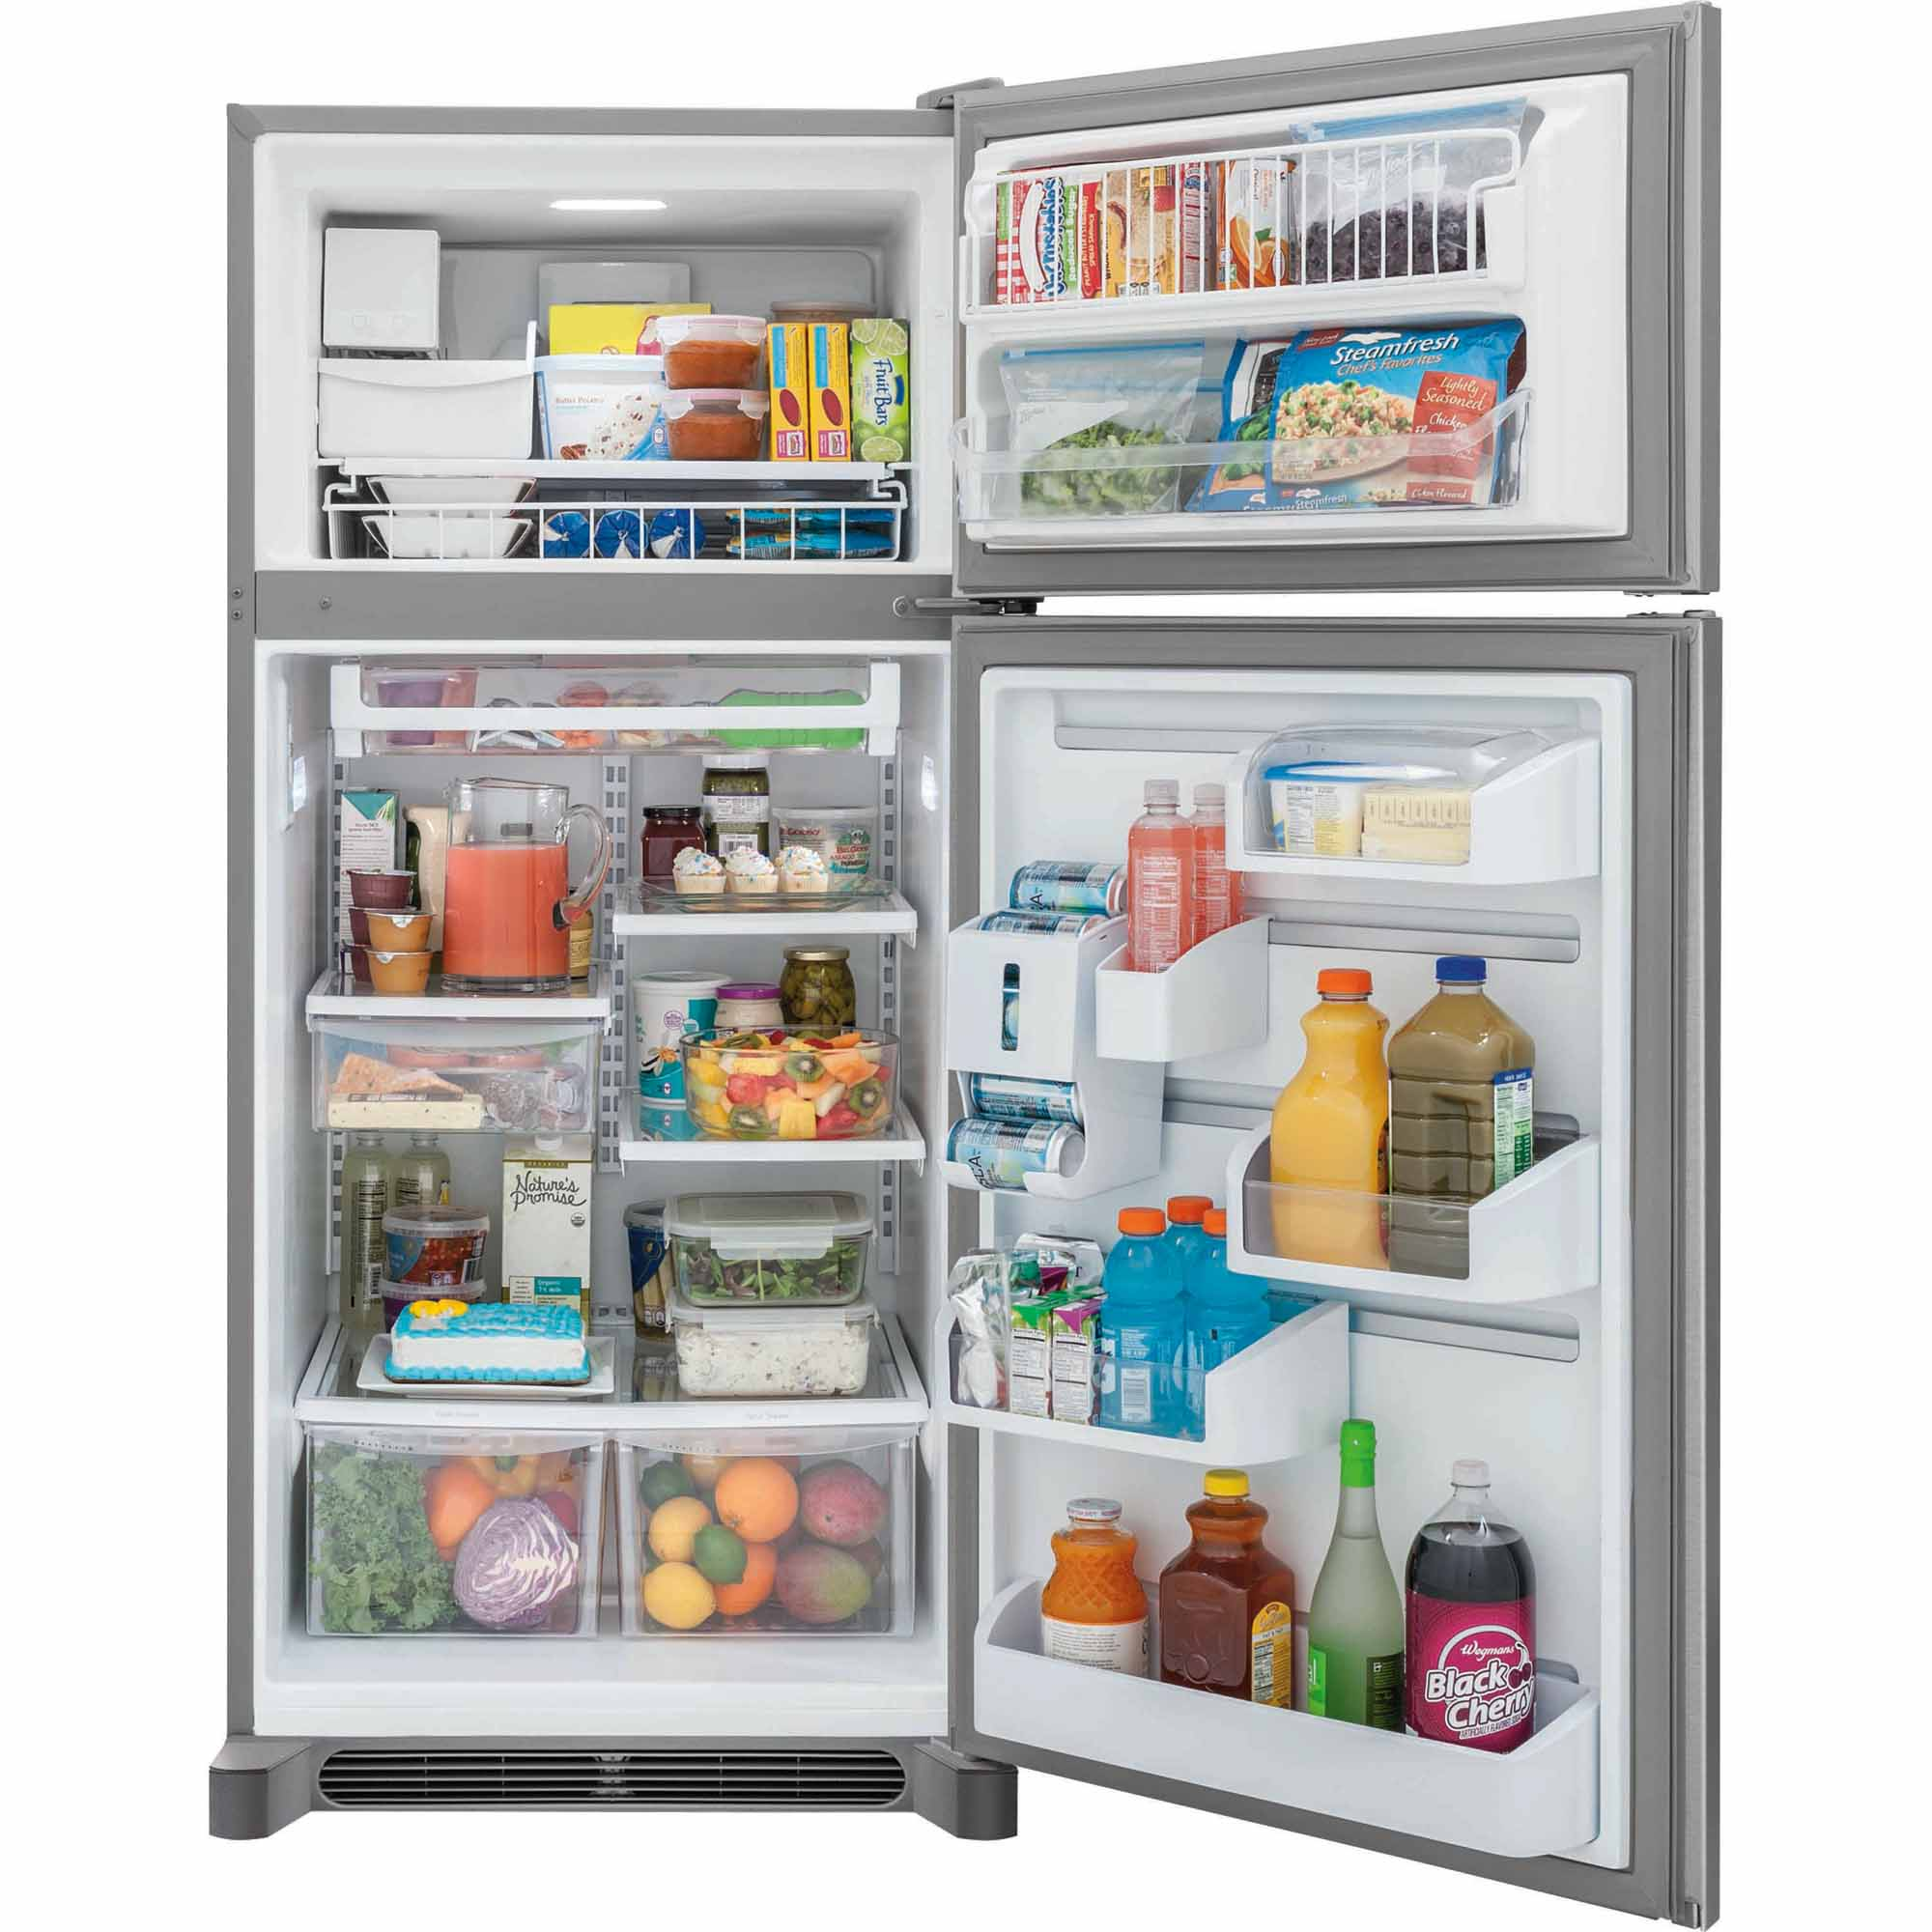 Frigidaire Gallery FGHI2164QF 20.5 cu. ft. Top Freezer Refrigerator - Stainless Steel